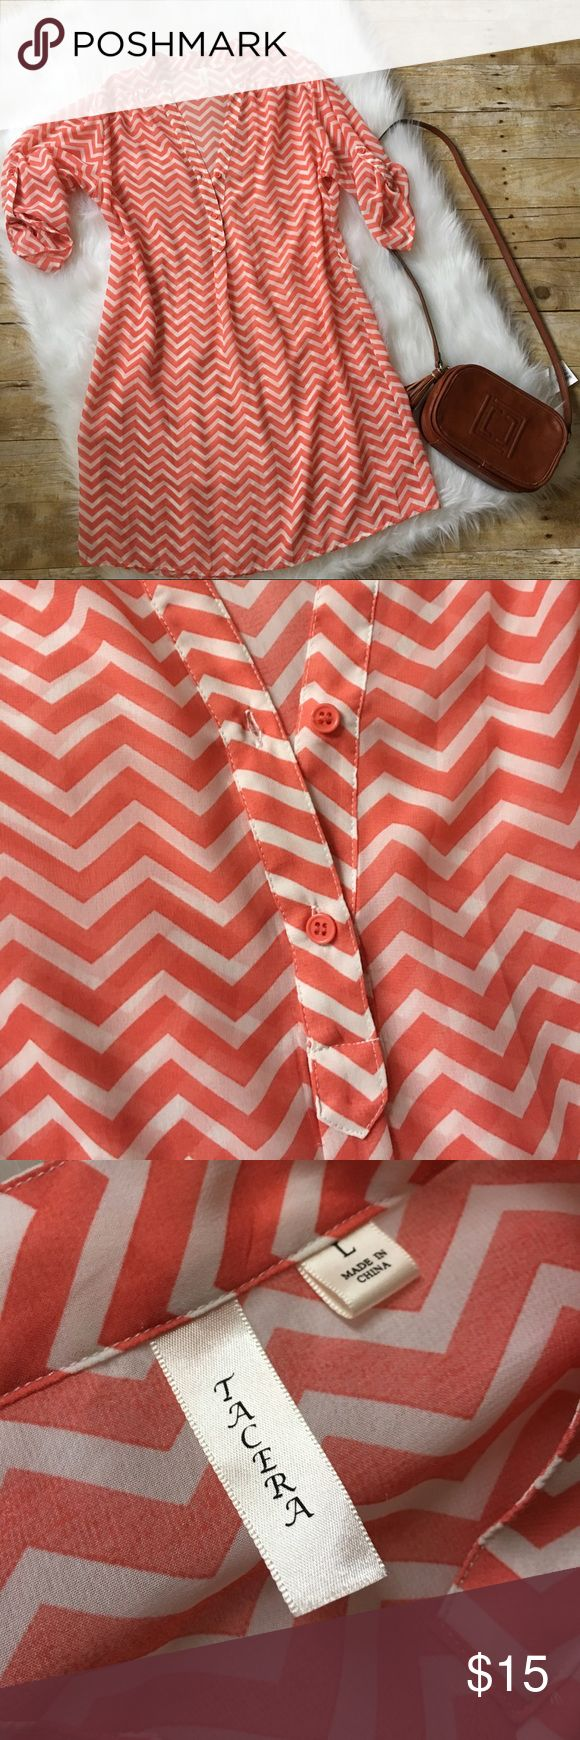 Cute spring chevron dress ECU / ships in 24 hours/ smoke free pet free home/ no trades/ make me an offer / save 20% when bundling , should wear a slip or leggings under it's pretty see through and it is an oversized L more like an XL tacera Dresses Midi